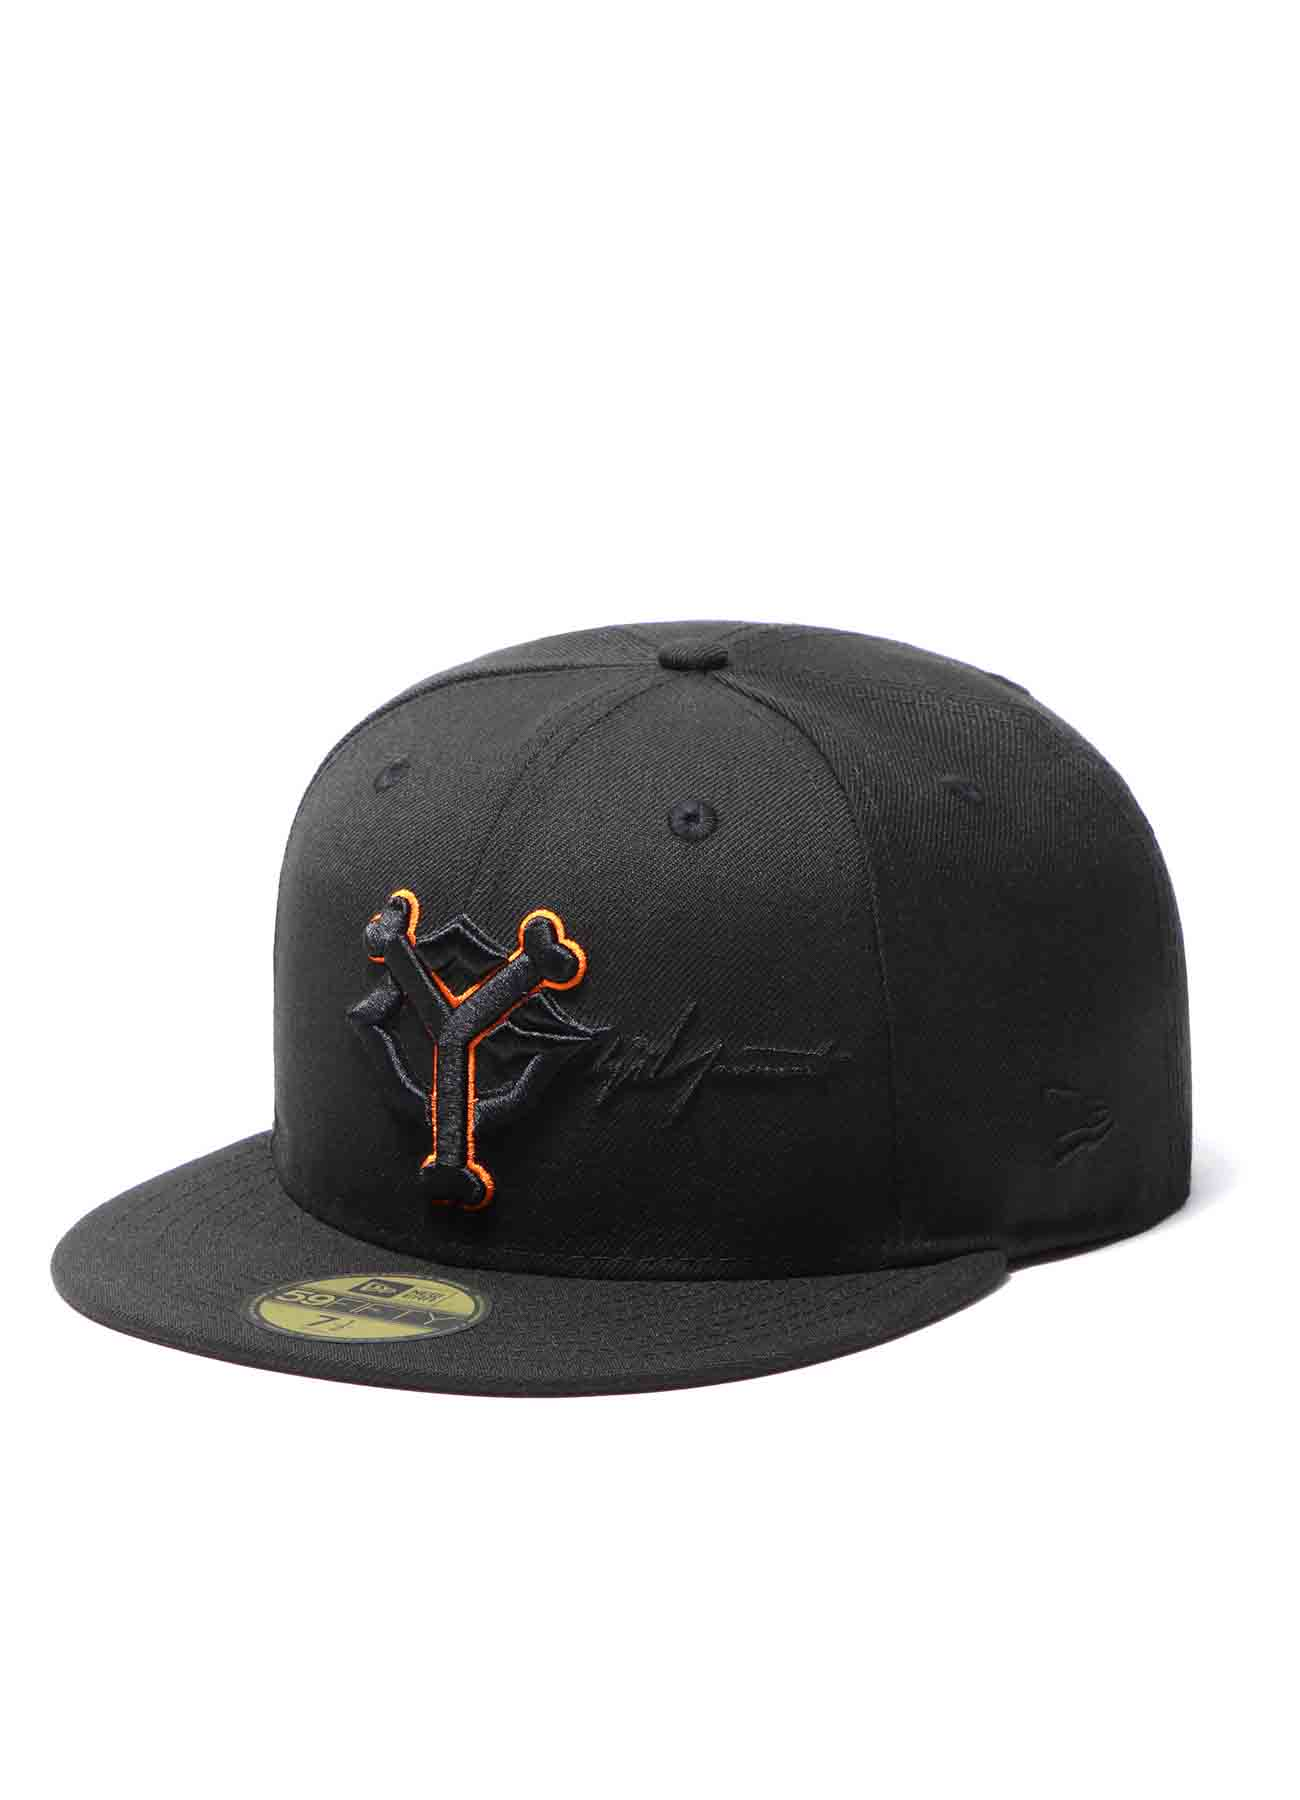 Yohji Yamamoto × Yomiuri Giants × New Era 59FIFTY Wool Searge Black Orange